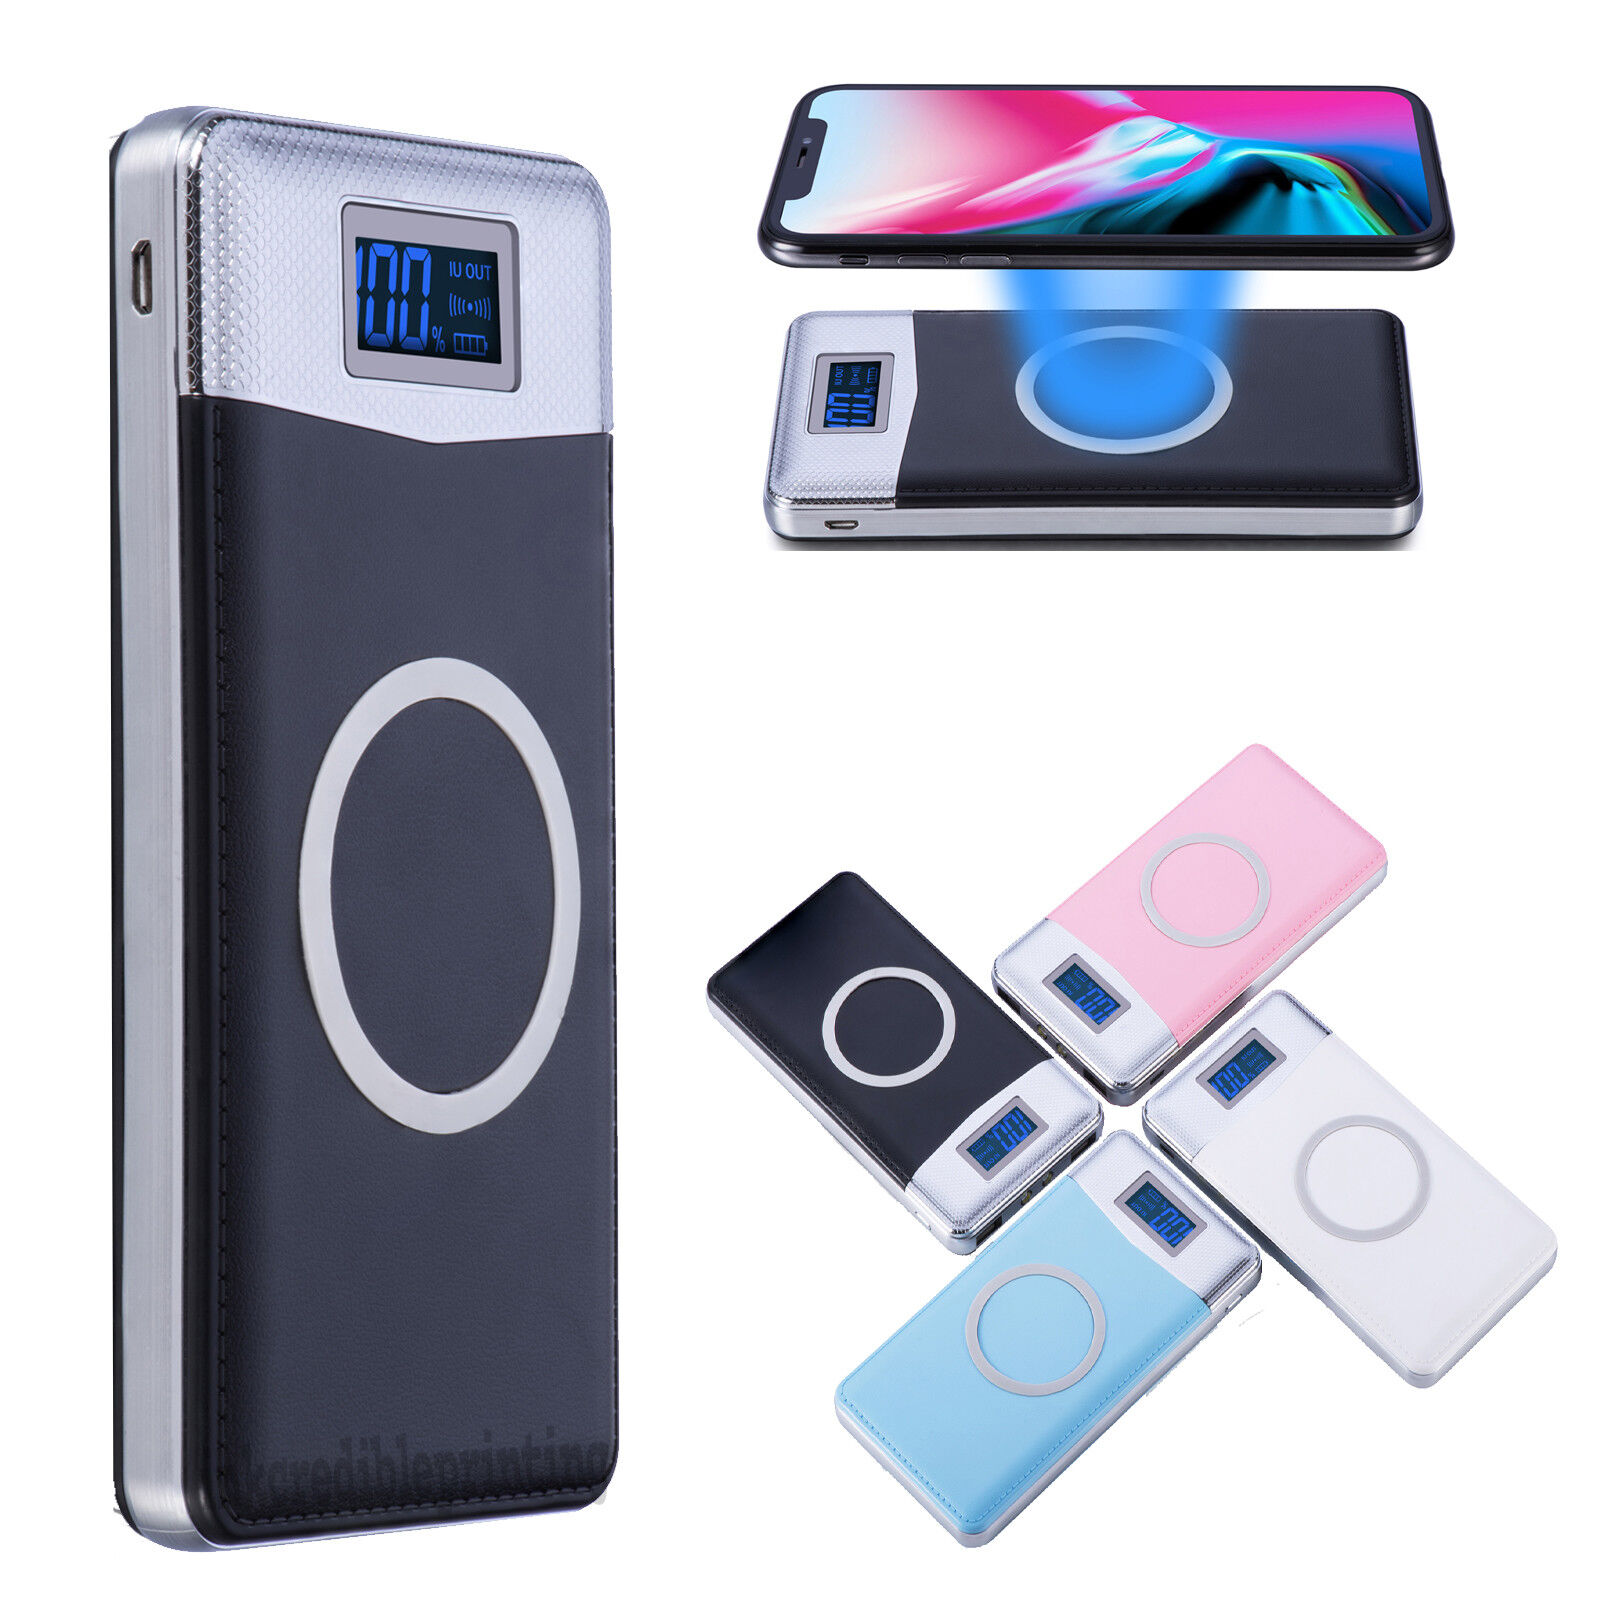 NEW 900000mAh Power Bank Qi Wireless Charging 2 USB LED Portable Battery Charger Cell Phone Accessories